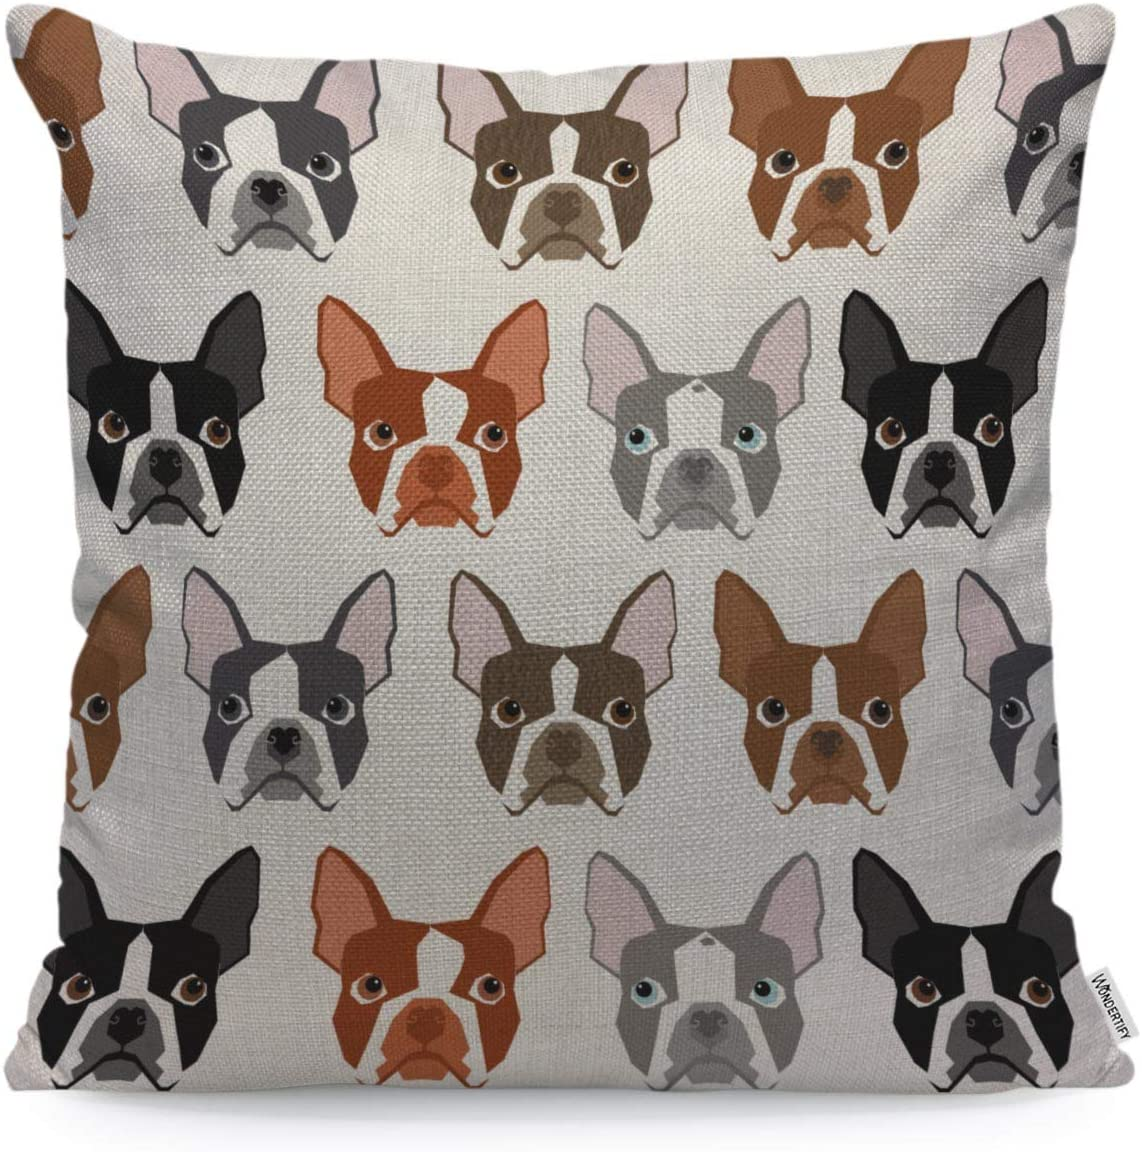 WONDERTIFY Throw Pillow Cover Case Dog Boston Terrier Seamless Pattern - Soft Linen Pillow Case for Decorative Bedroom/Livingroom/Sofa/Farm House - Couch Pillow Cushion Covers 18x18 Inch 45x45 cm